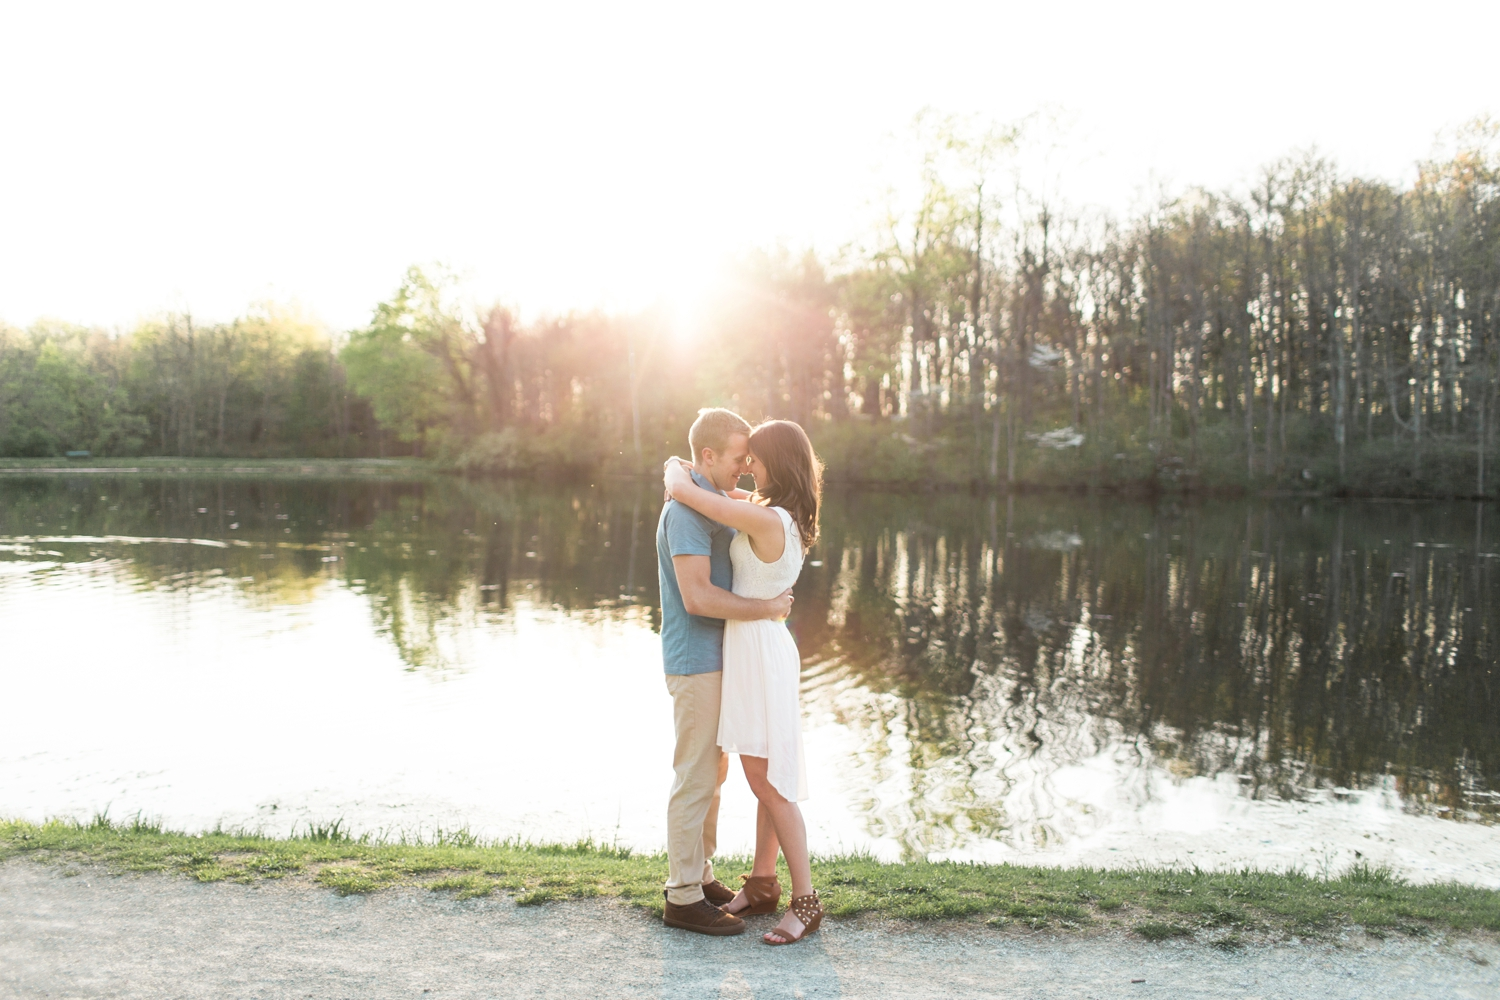 indianapolis_indiana_wedding_photographer_eagle_creek_engagement_chloe_luka_photography_6380.jpg